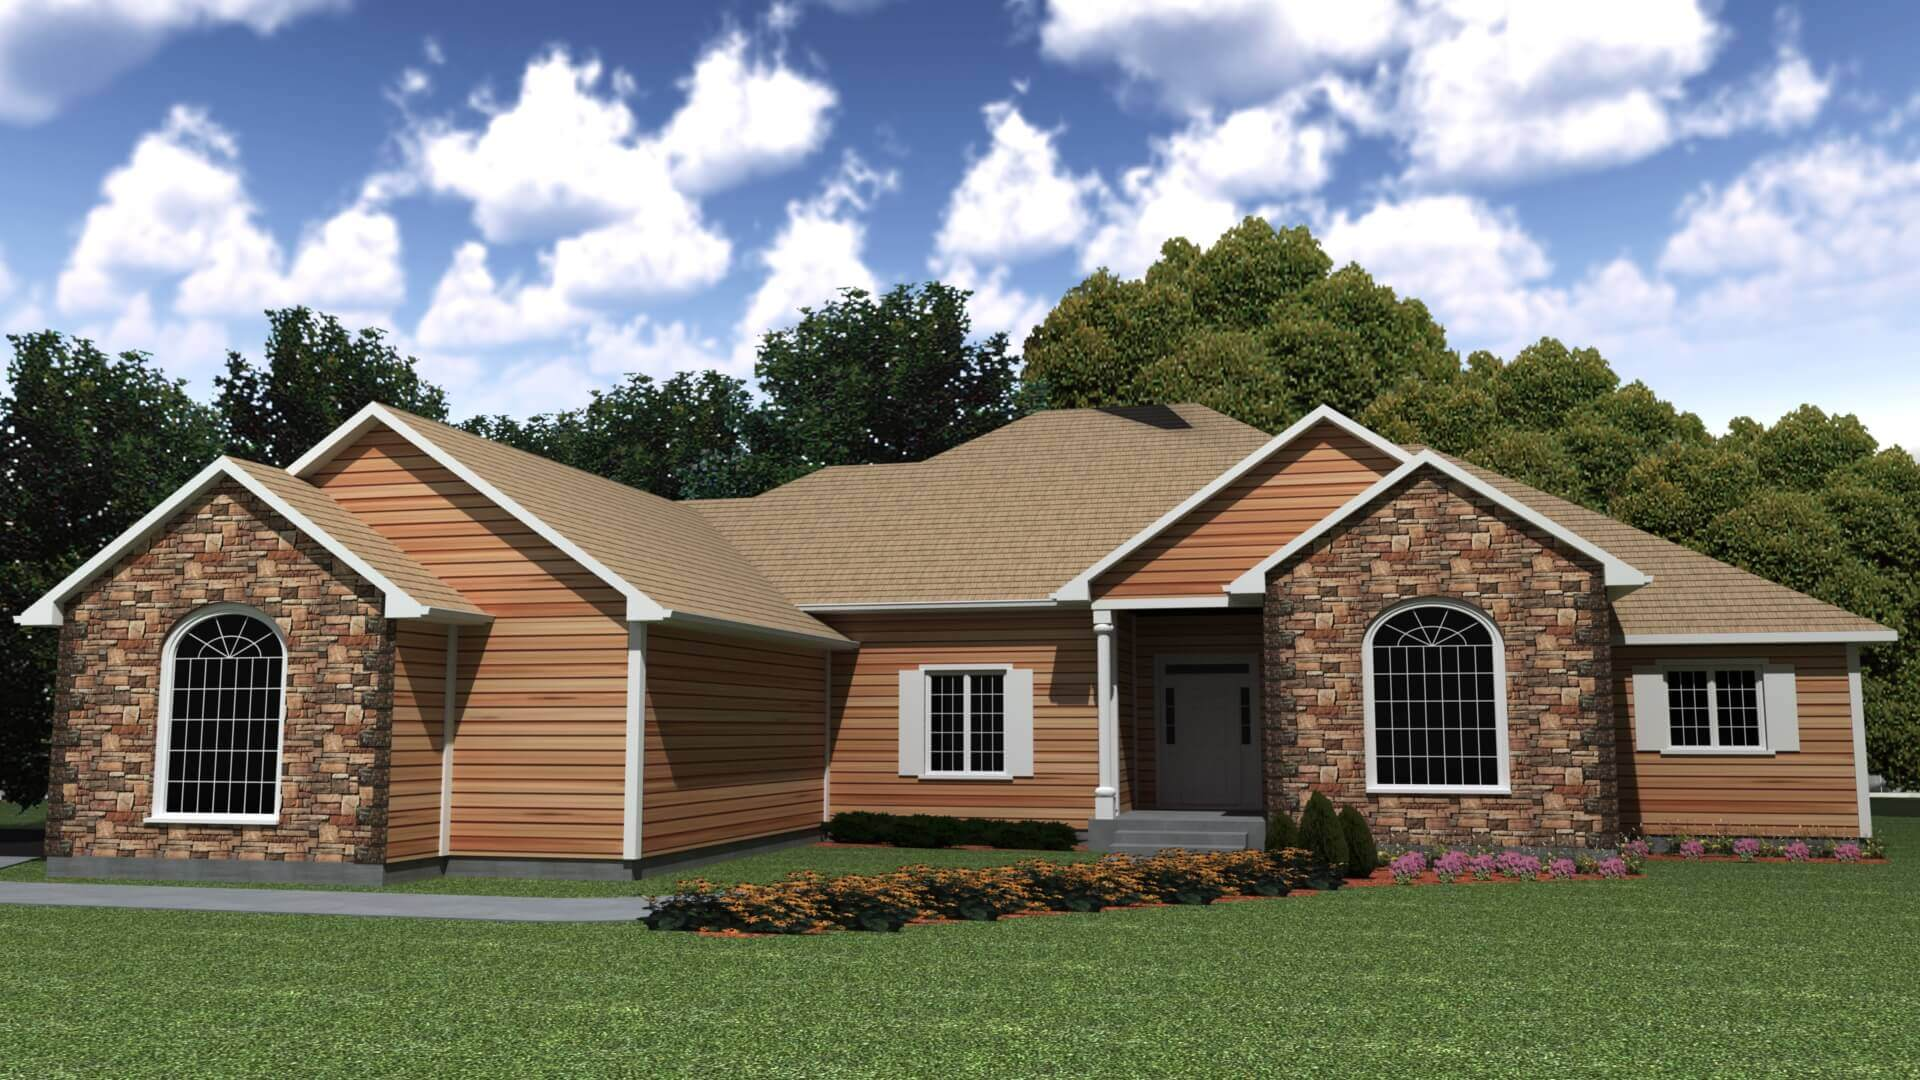 2642 sq.ft. timber mart house 3 bed 3 bath exterior render